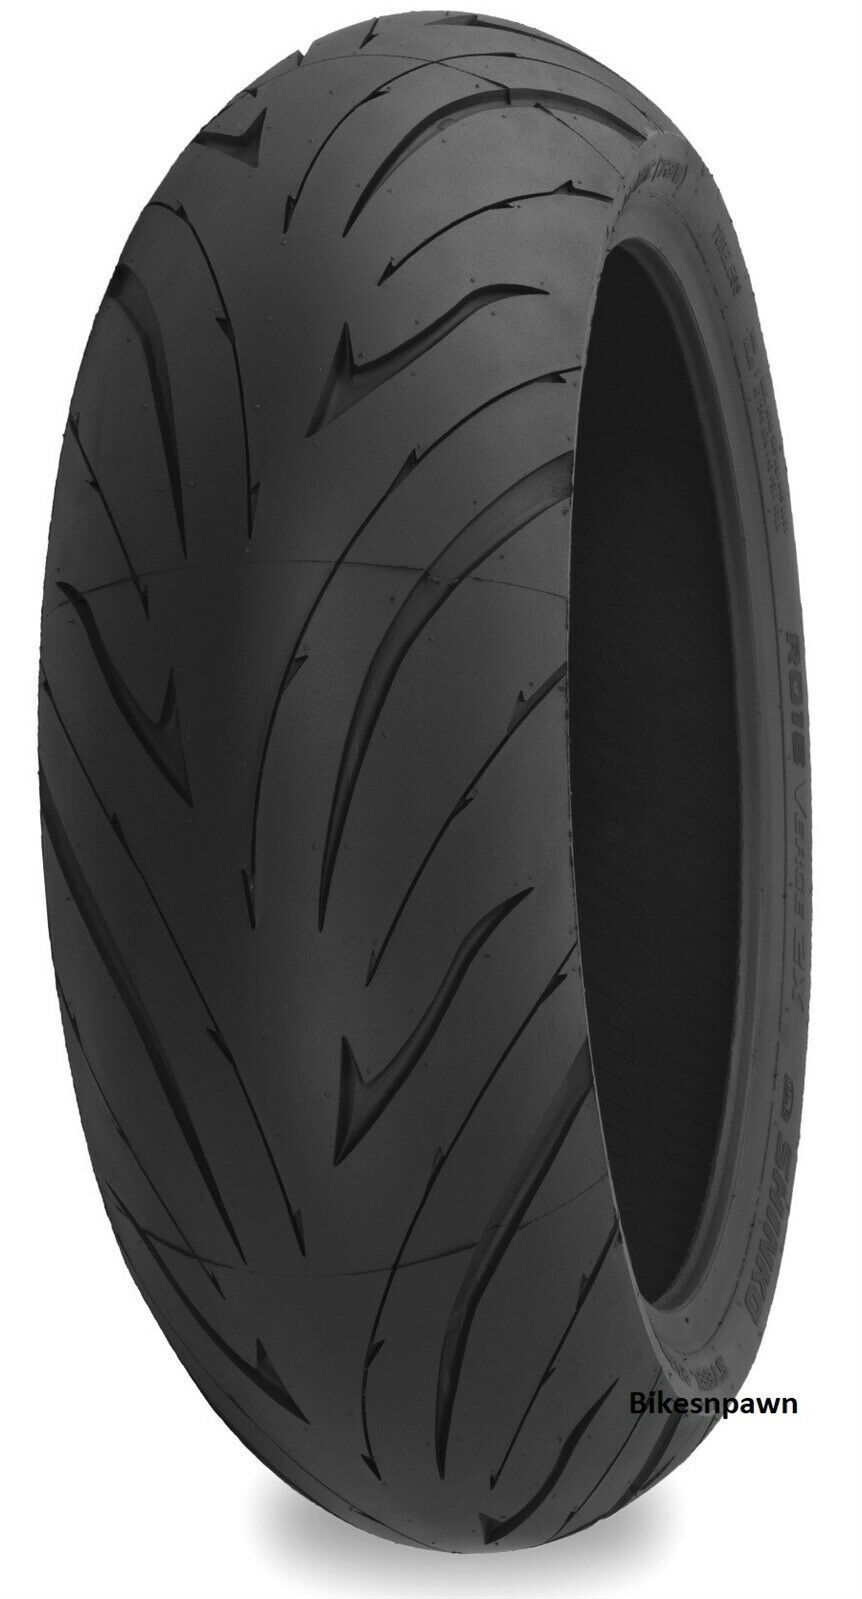 New 190/55ZR17 Shinko 016 Verge 2X Dual Compound Radial Rear Motorcycle Tire W75